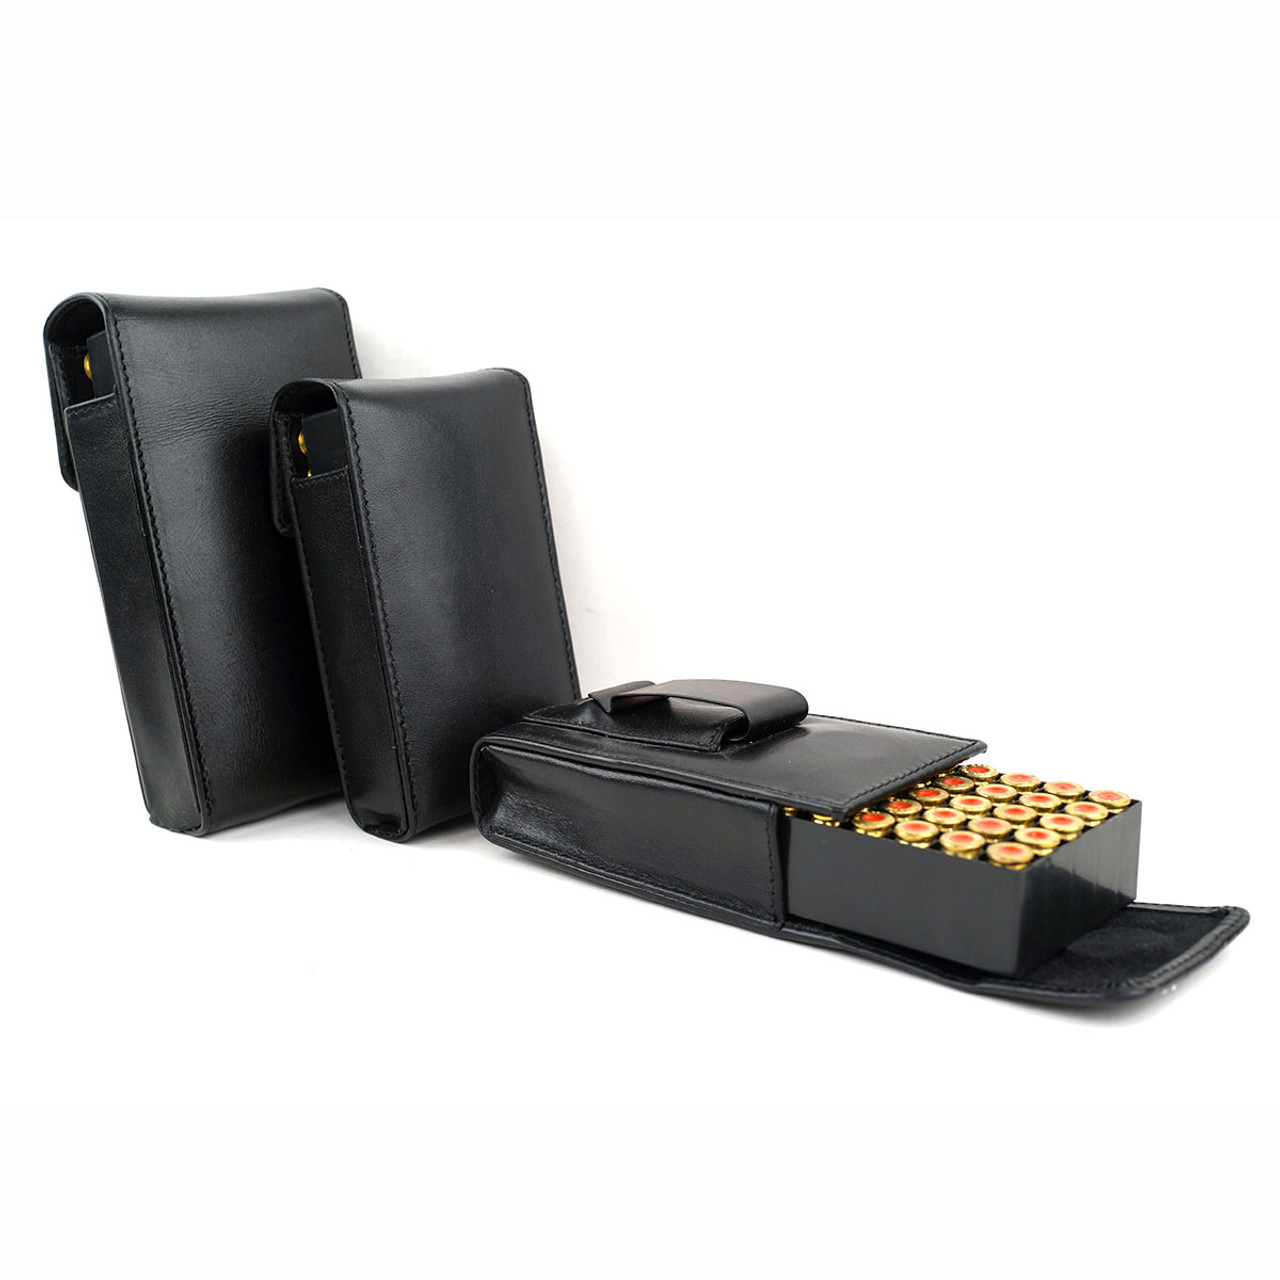 Glock 19 Leather Arsenal 50 Round Belt Case